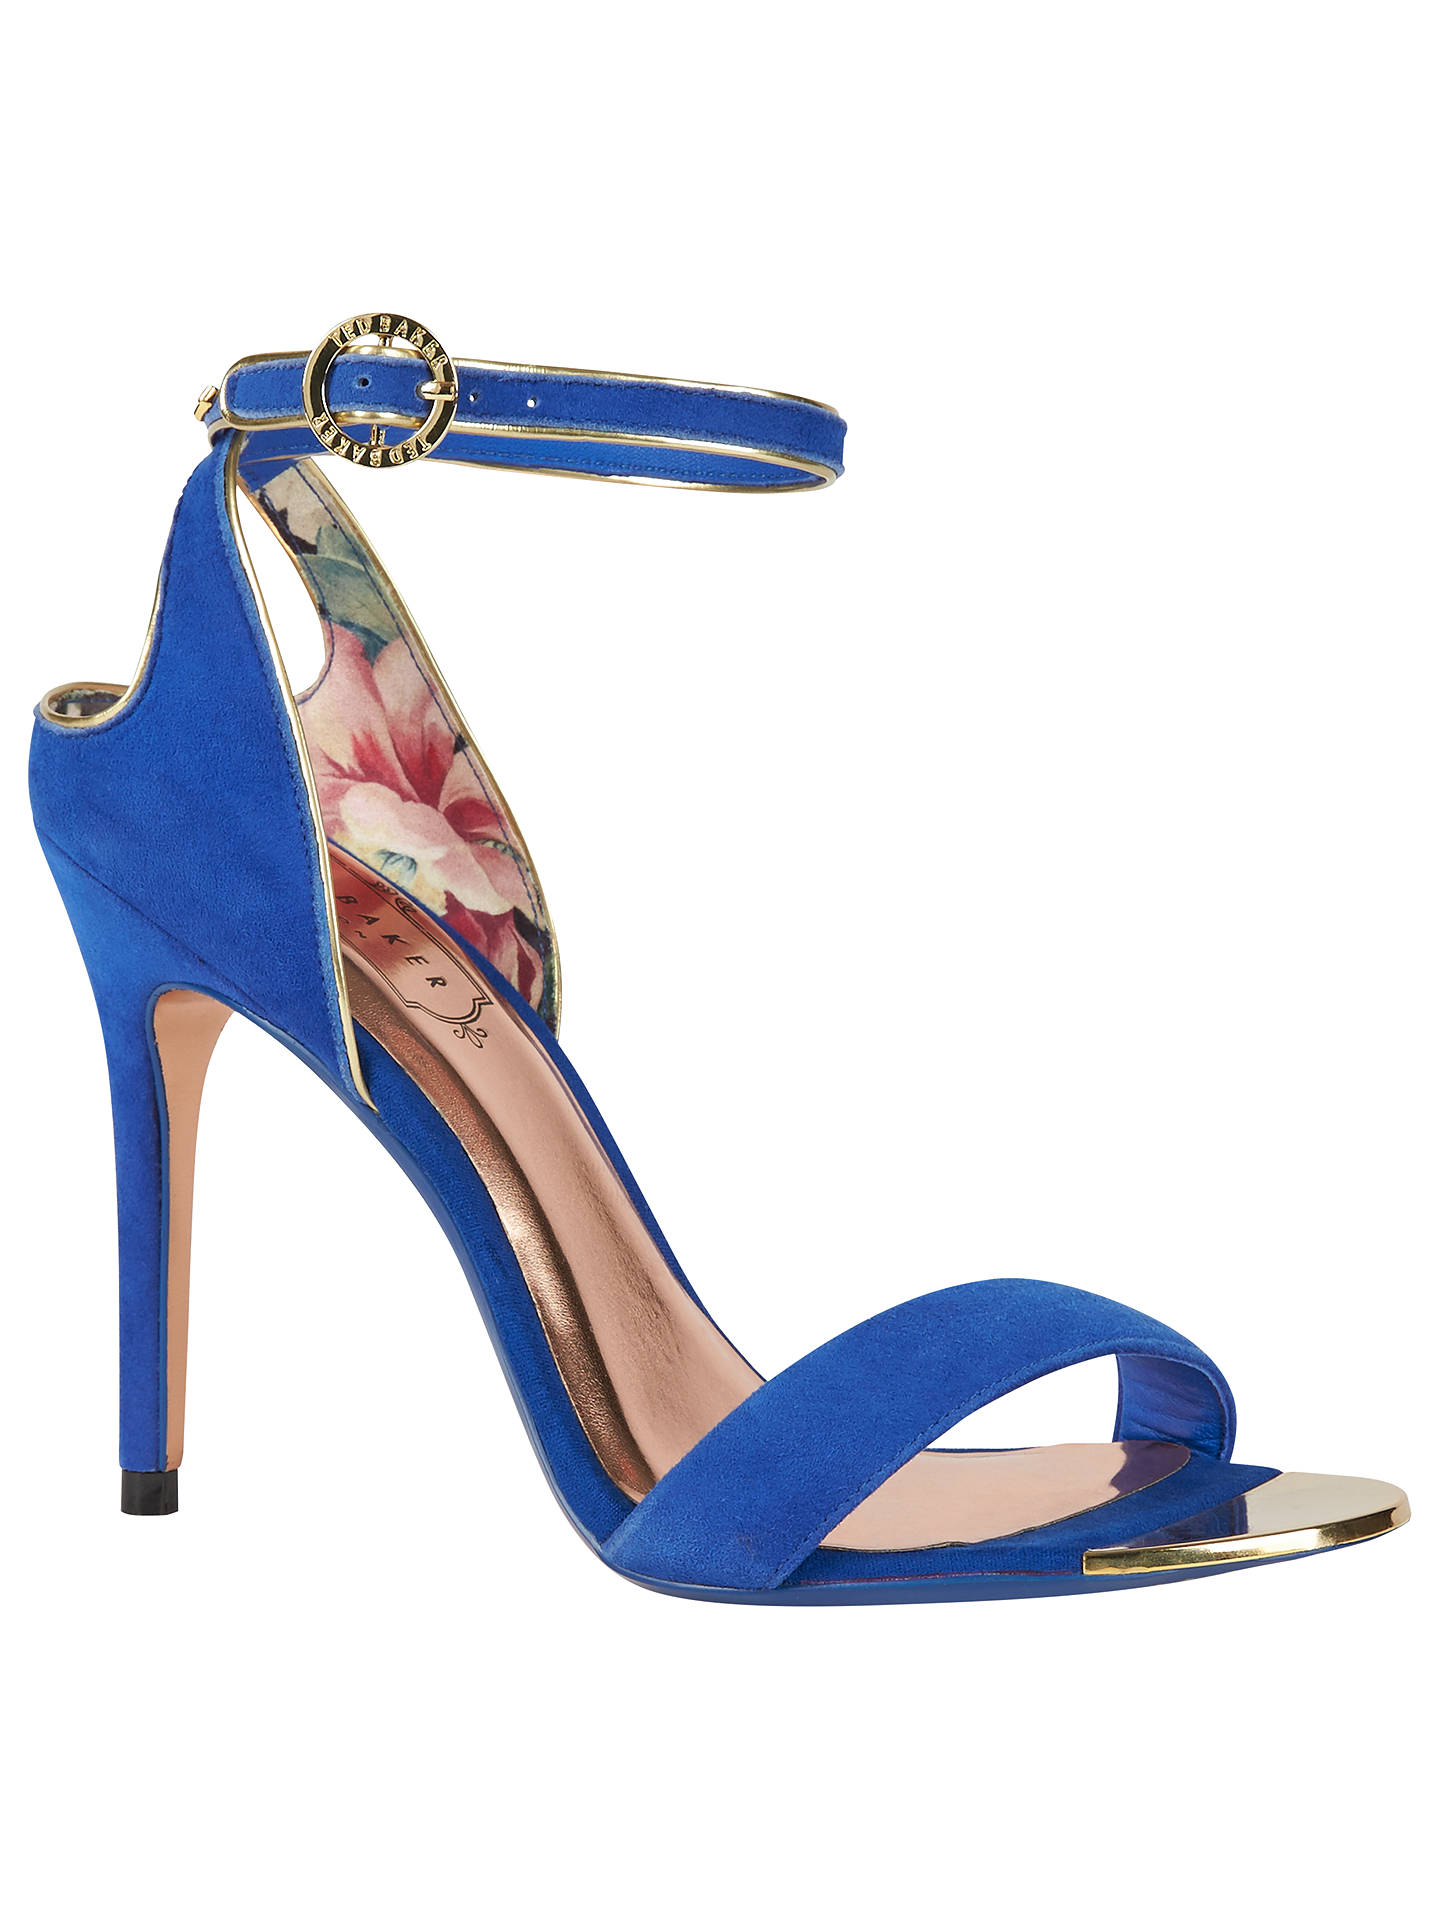 BuyTed Baker Mirobell Stiletto Heeled Sandals, Blue, 4 Online at johnlewis.com